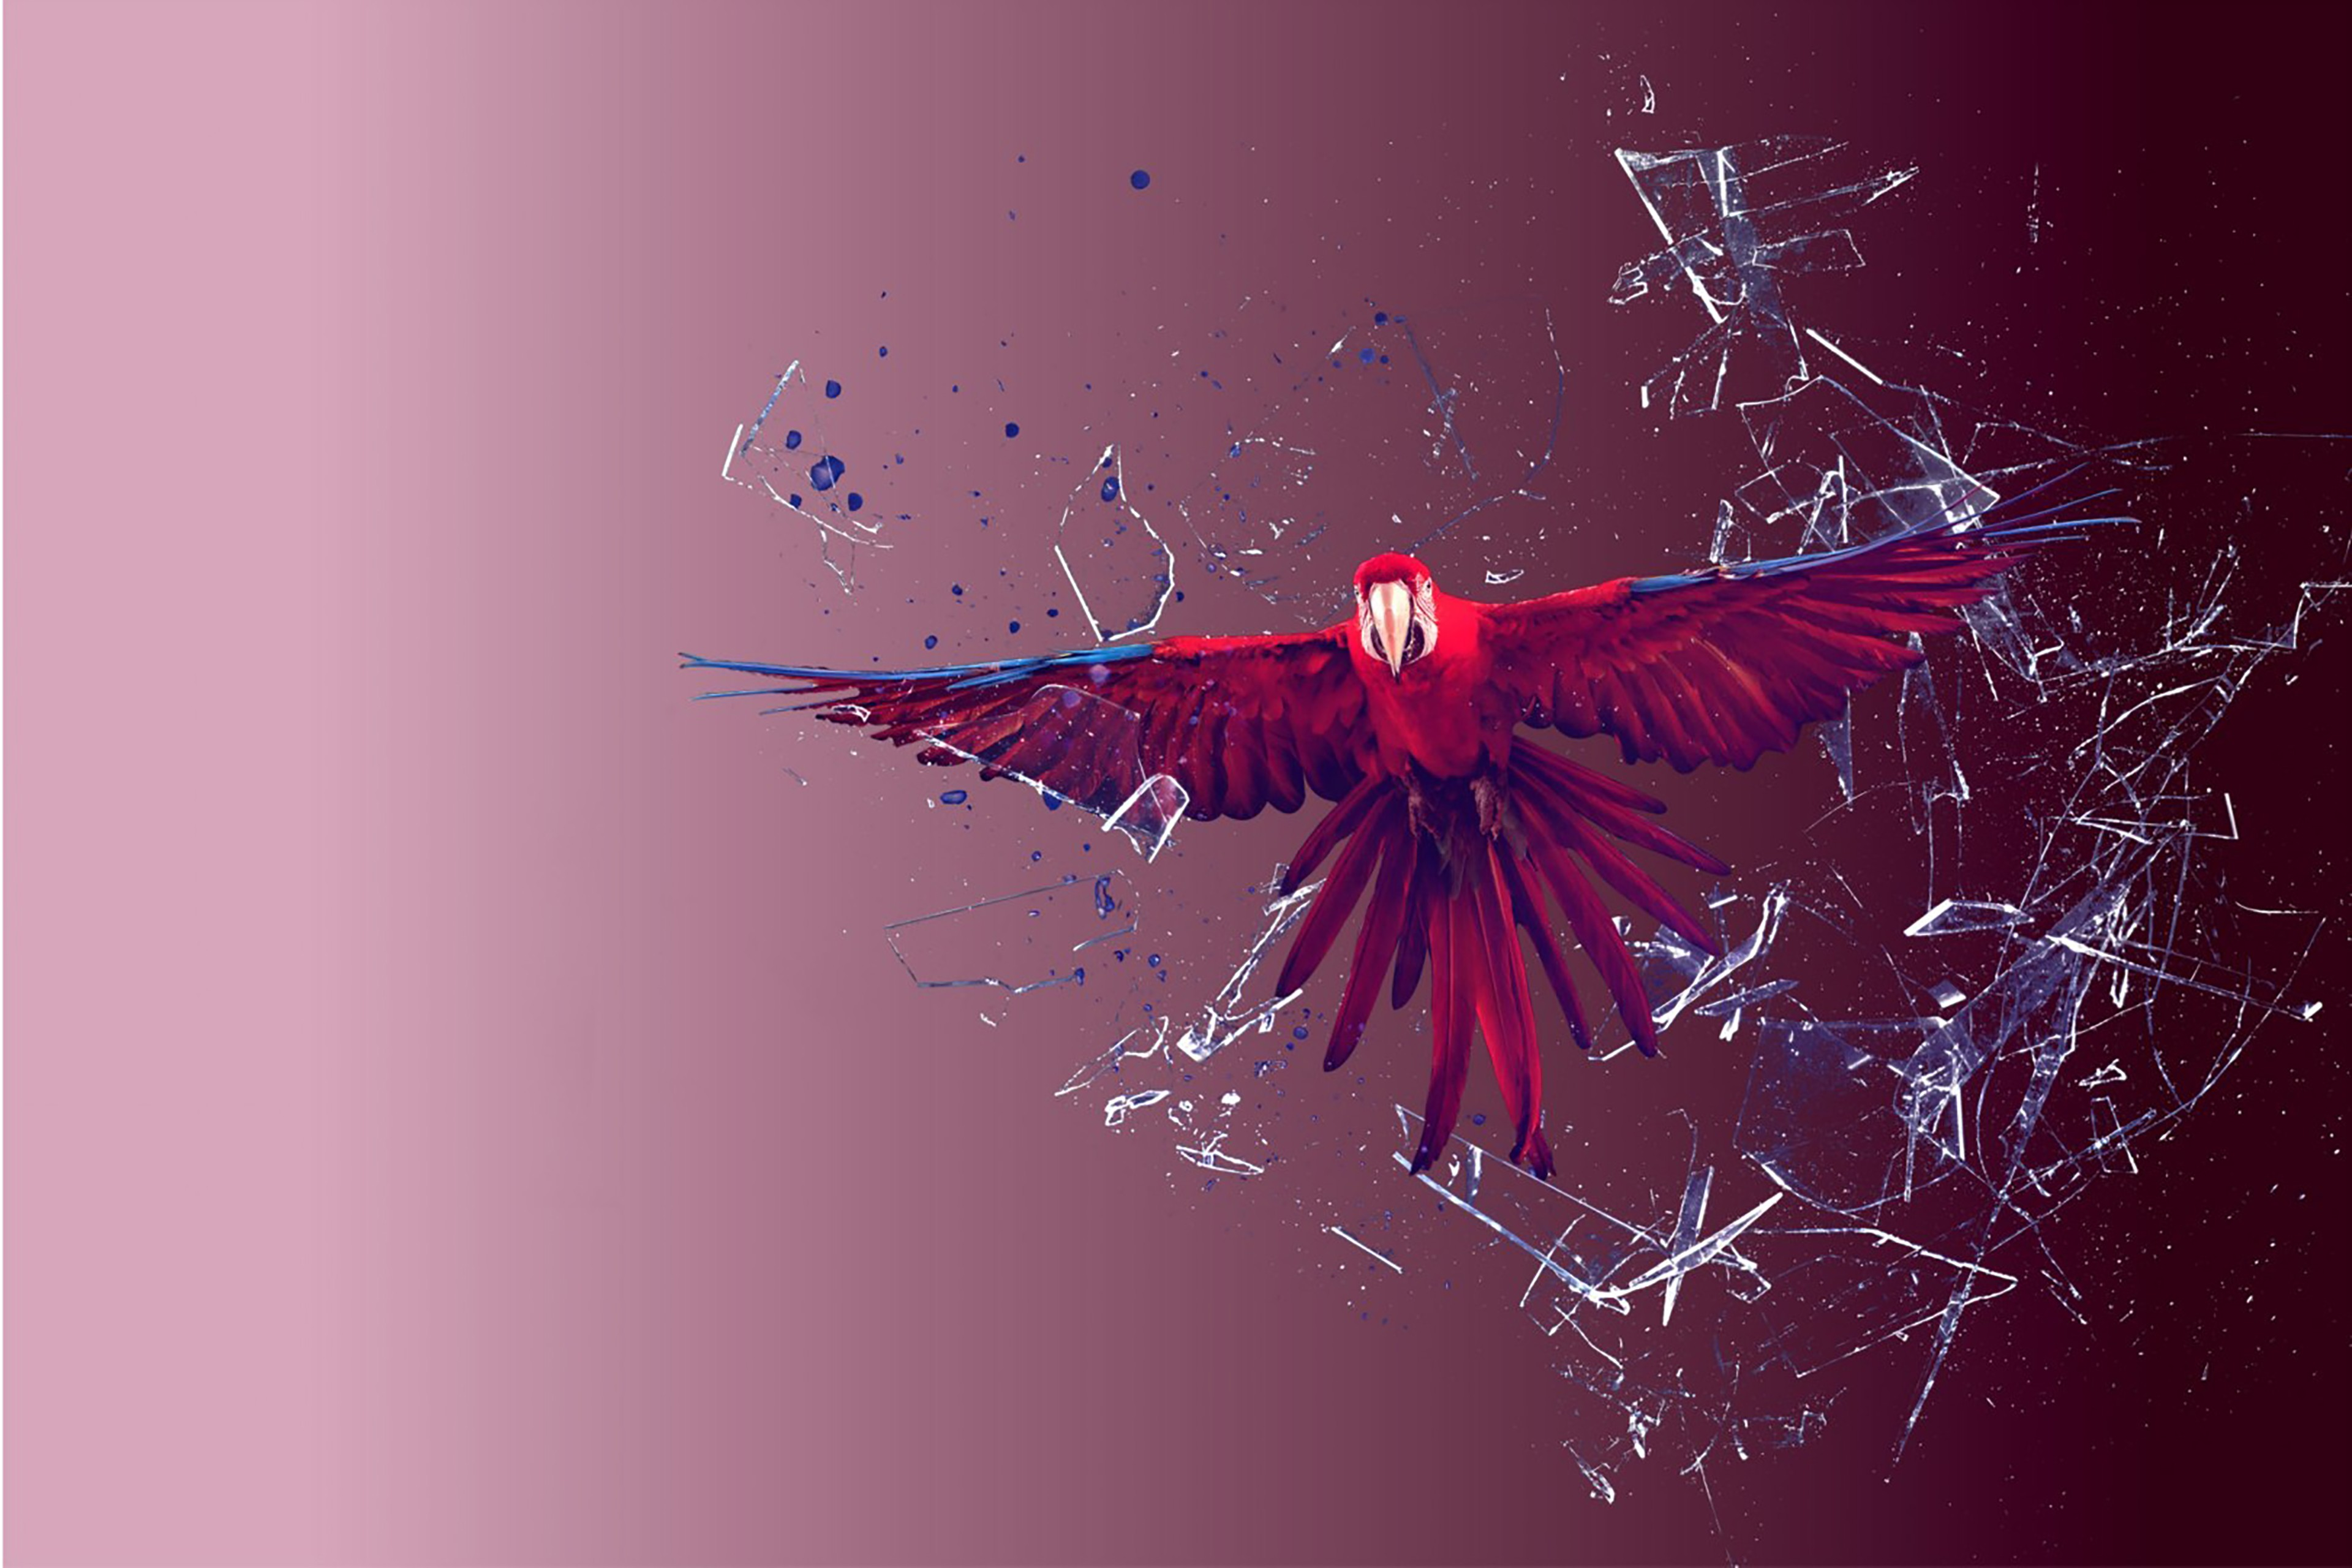 Unstoppable scarlet macaw